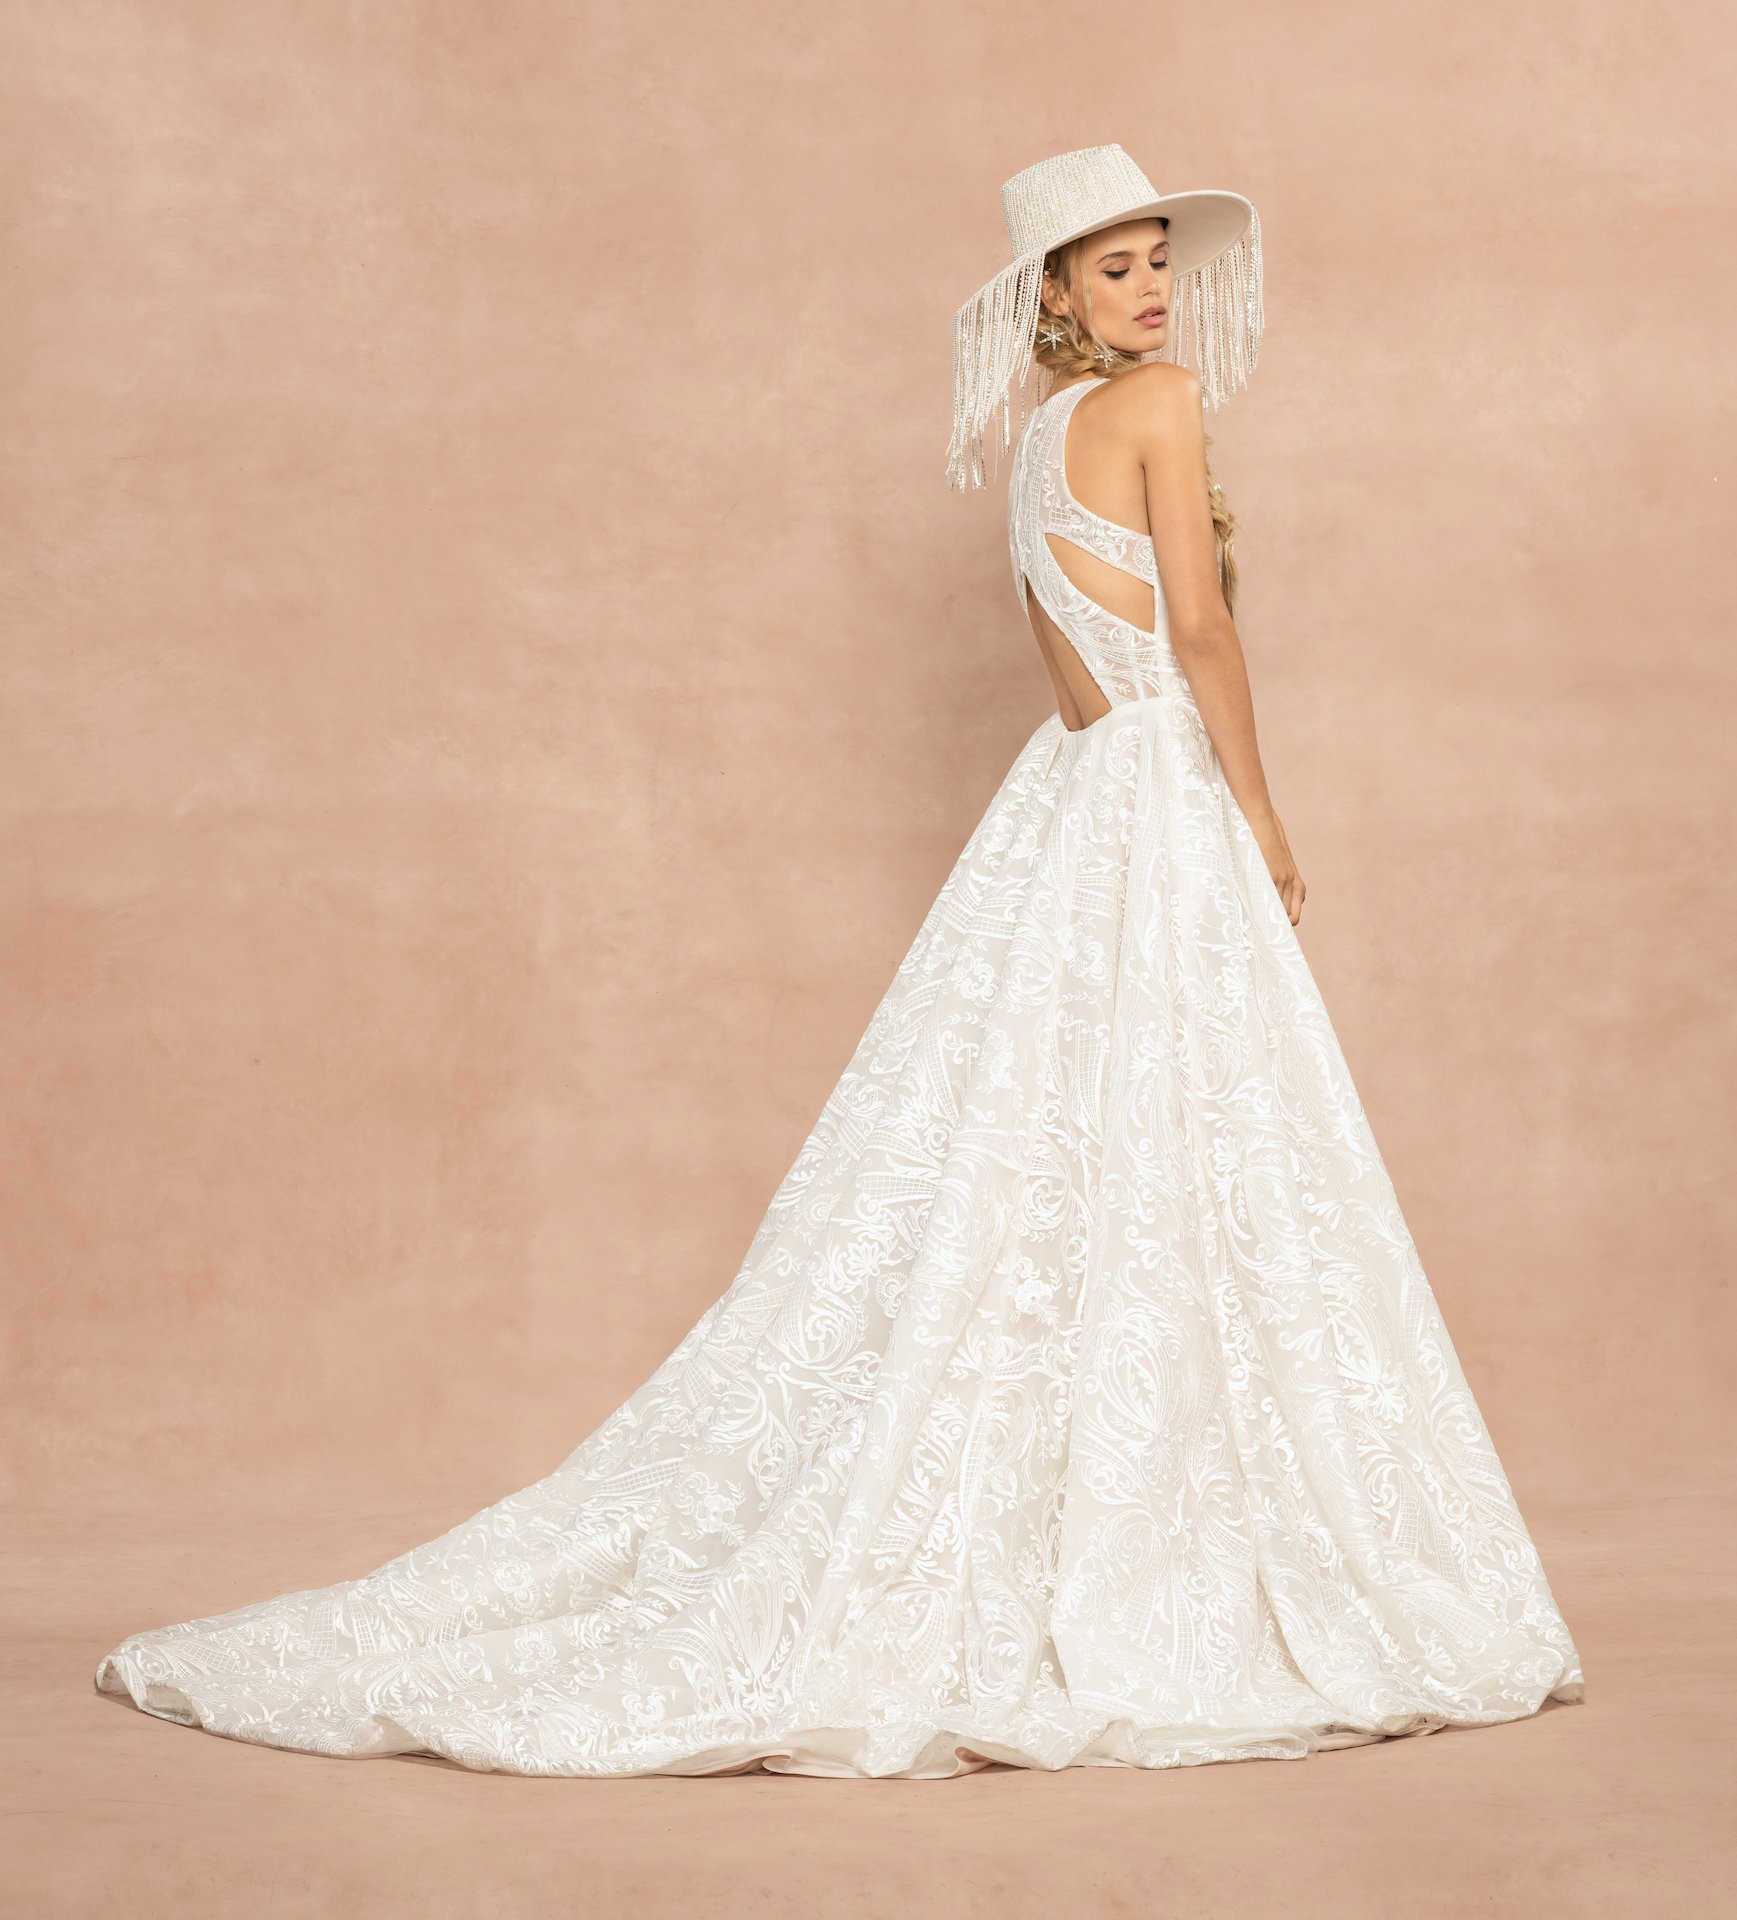 Wedding dress collection: Hayley Paige Spring 2020